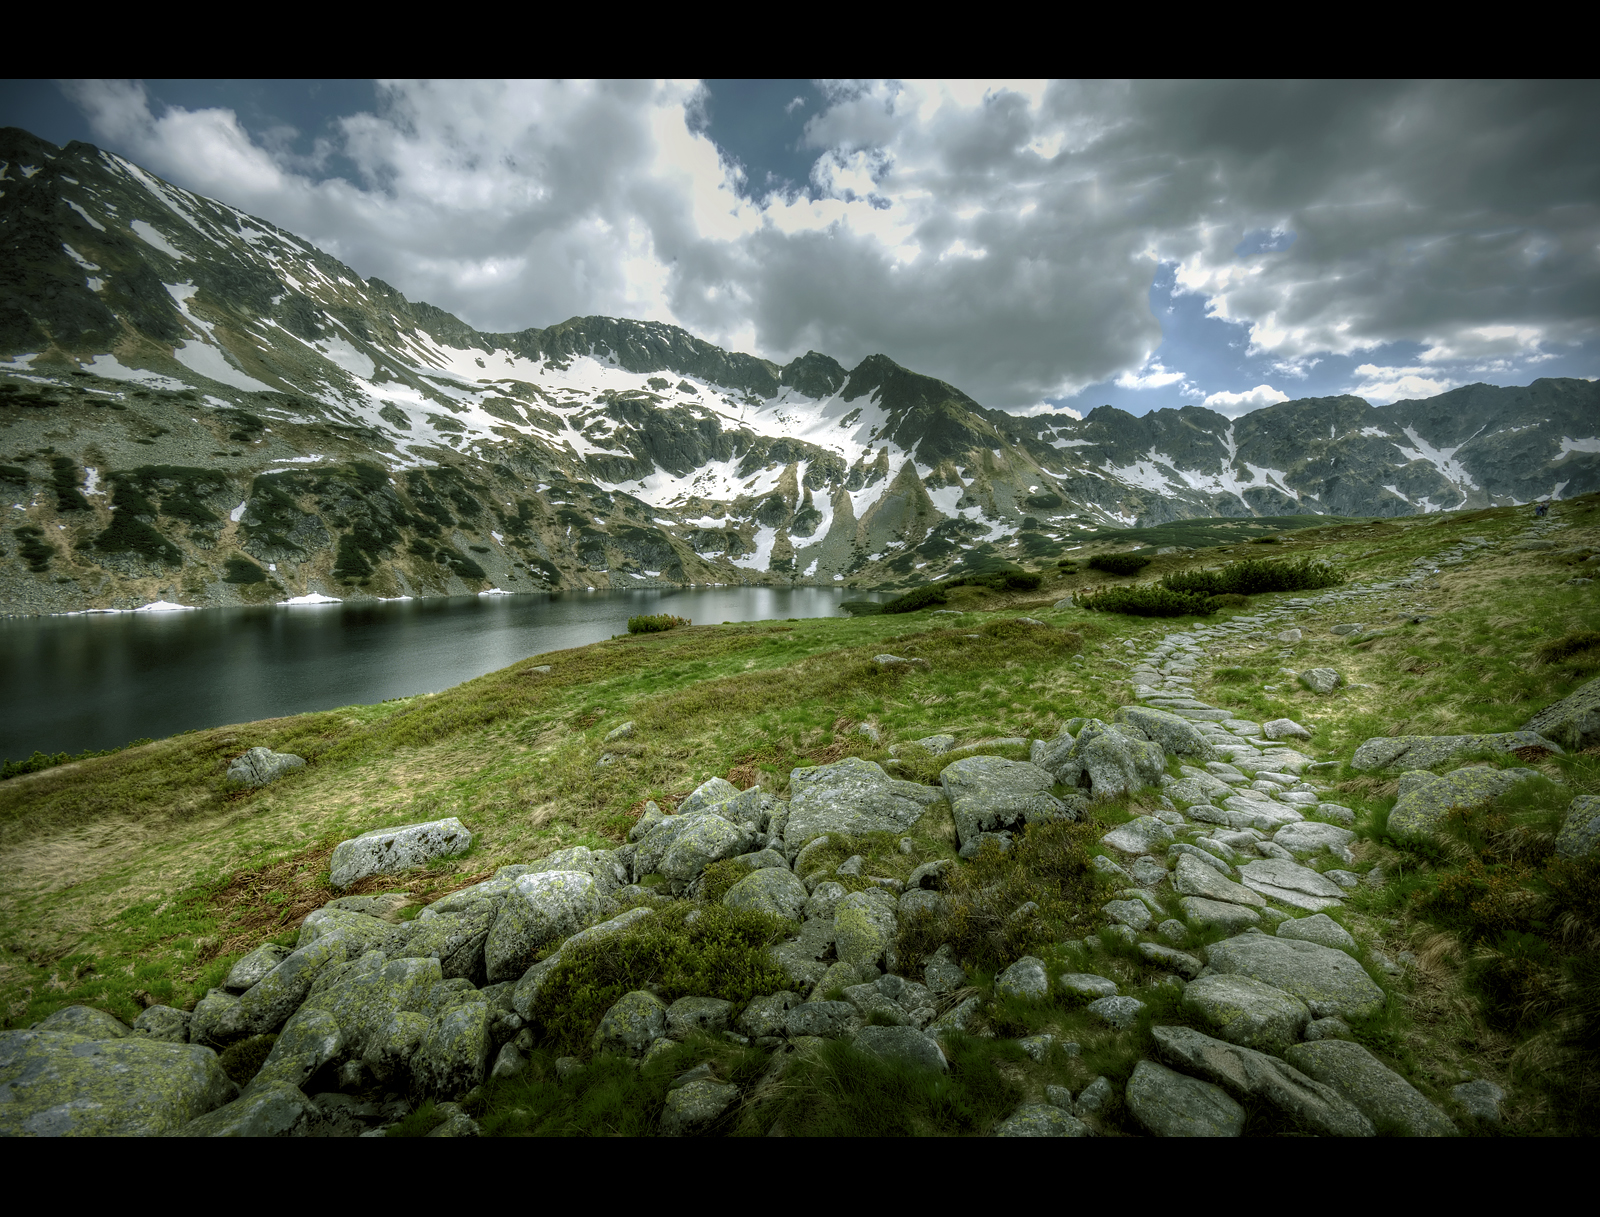 The Valley of the Five Lakes - The Great Lake III by Beezqp